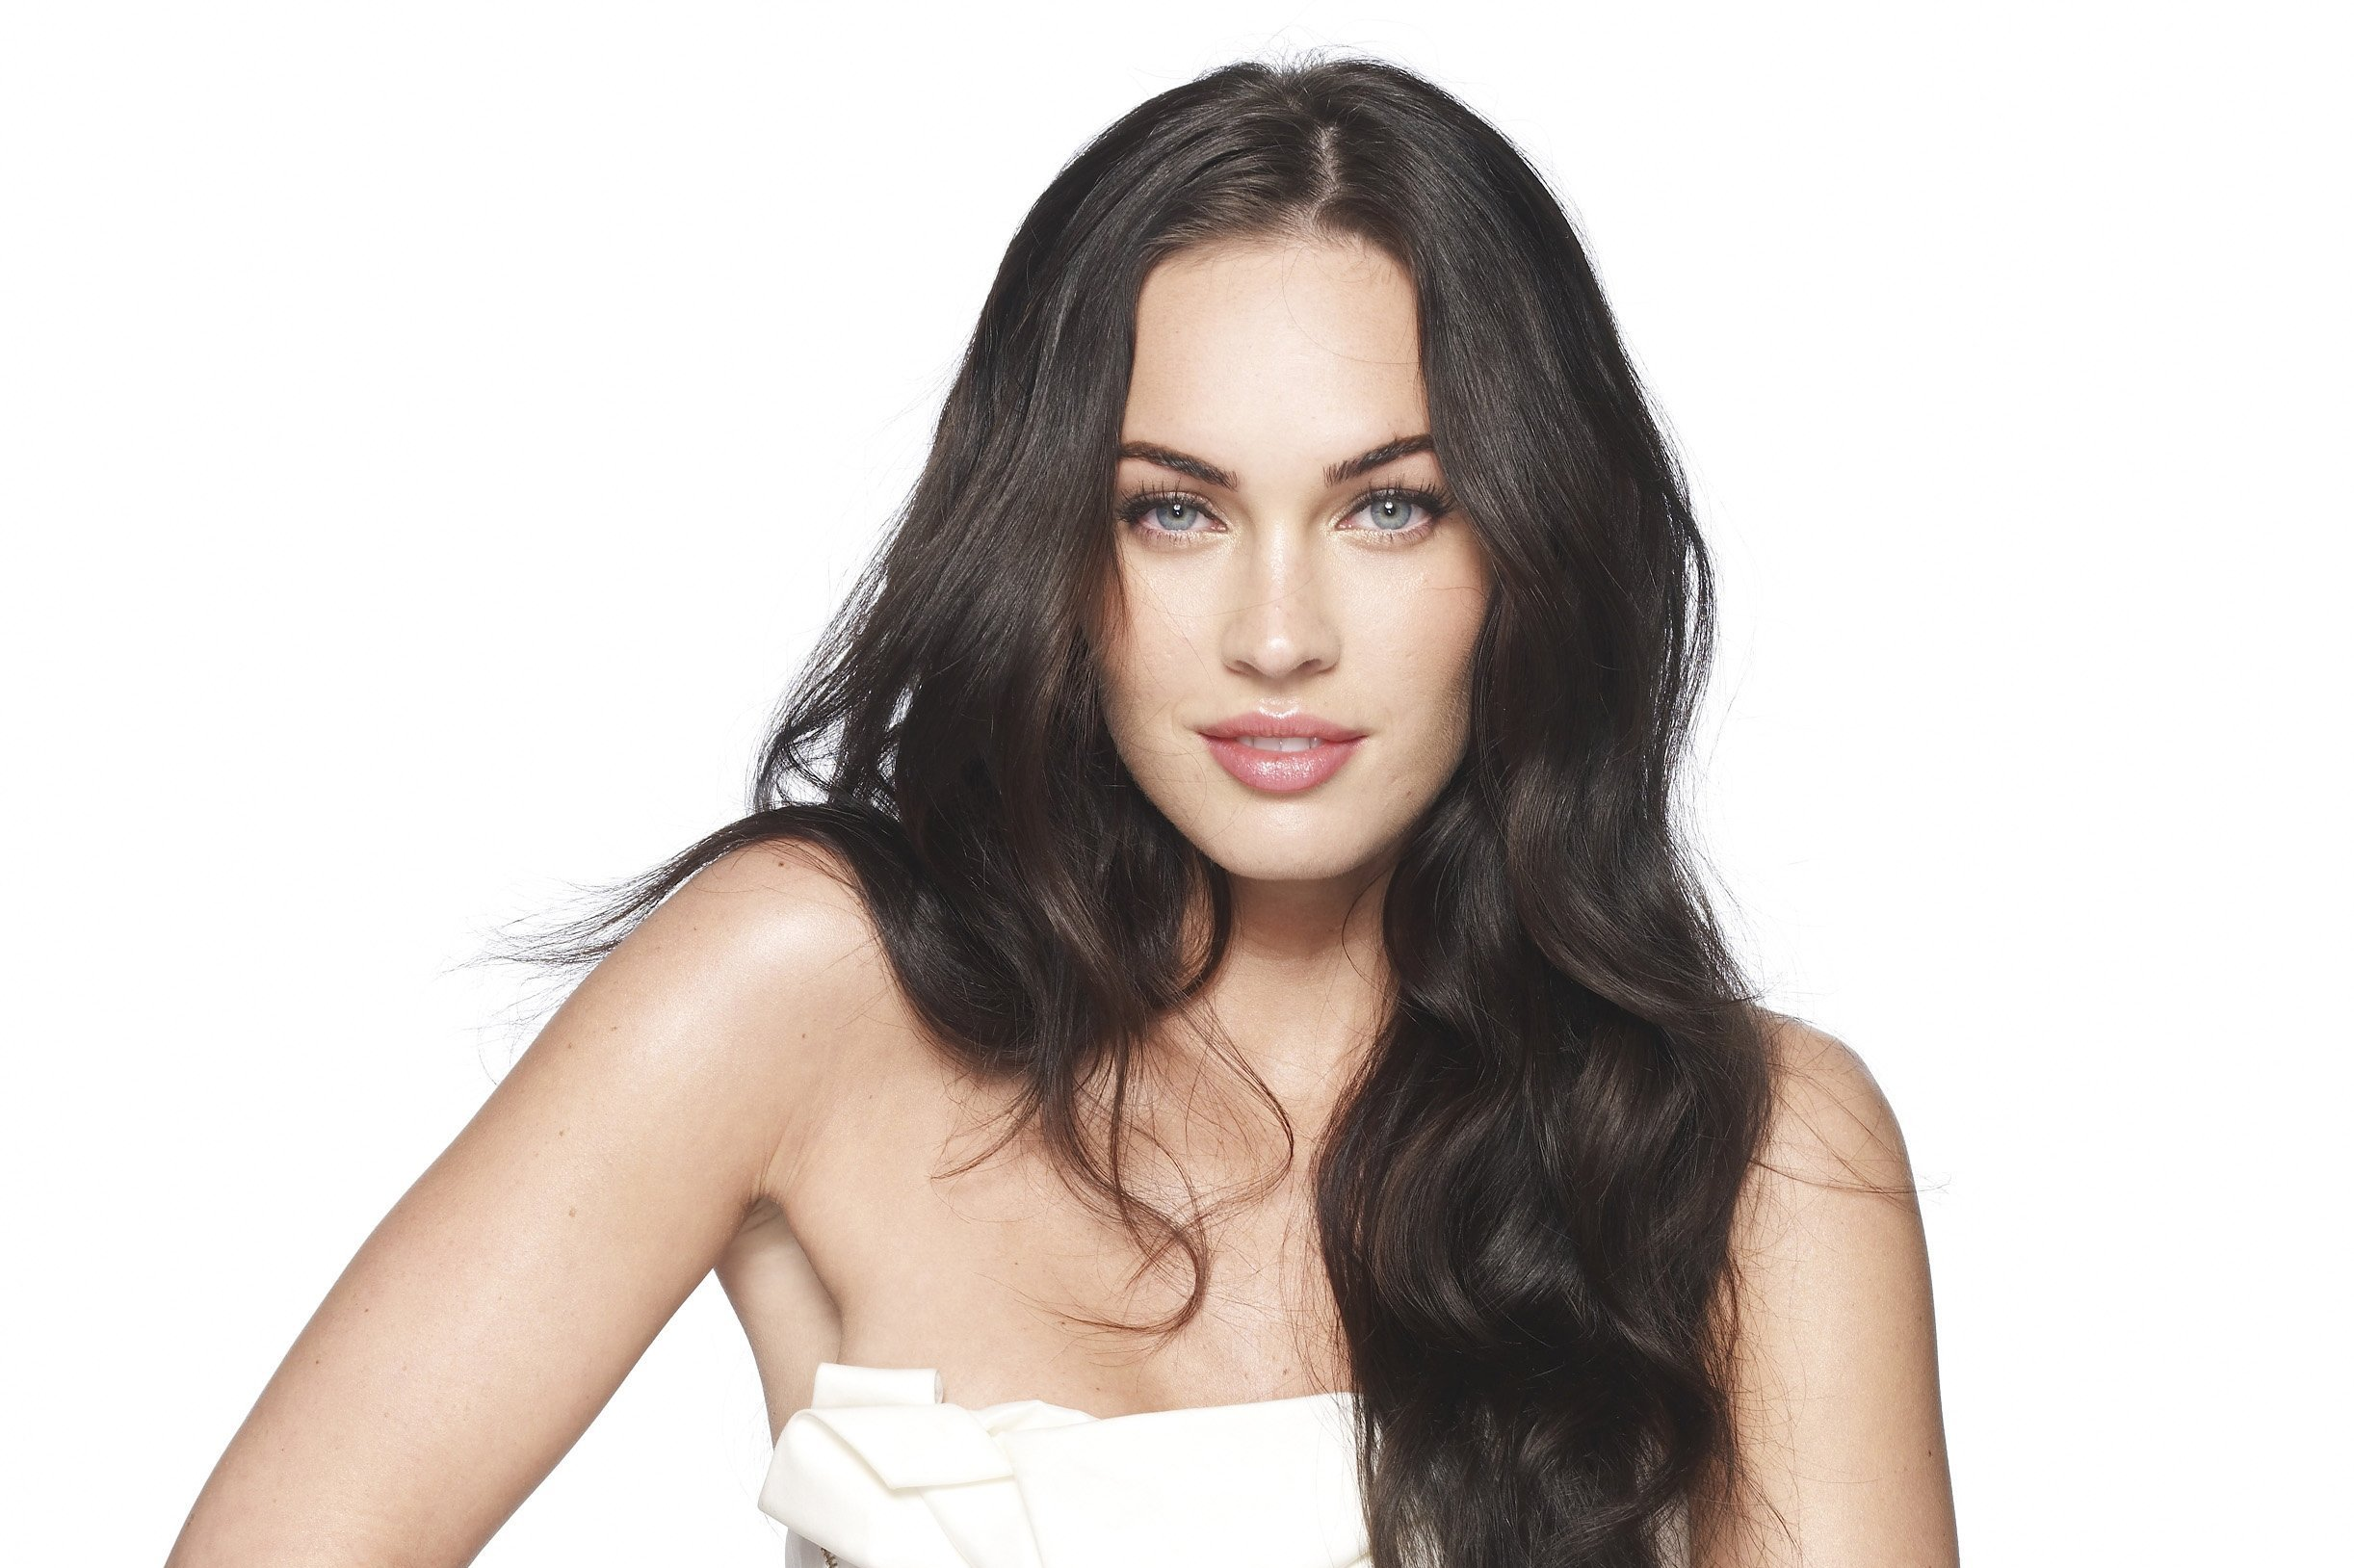 Megan fox sexy hd wallpapers all hd wallpapers - Celeb wallpapers ...